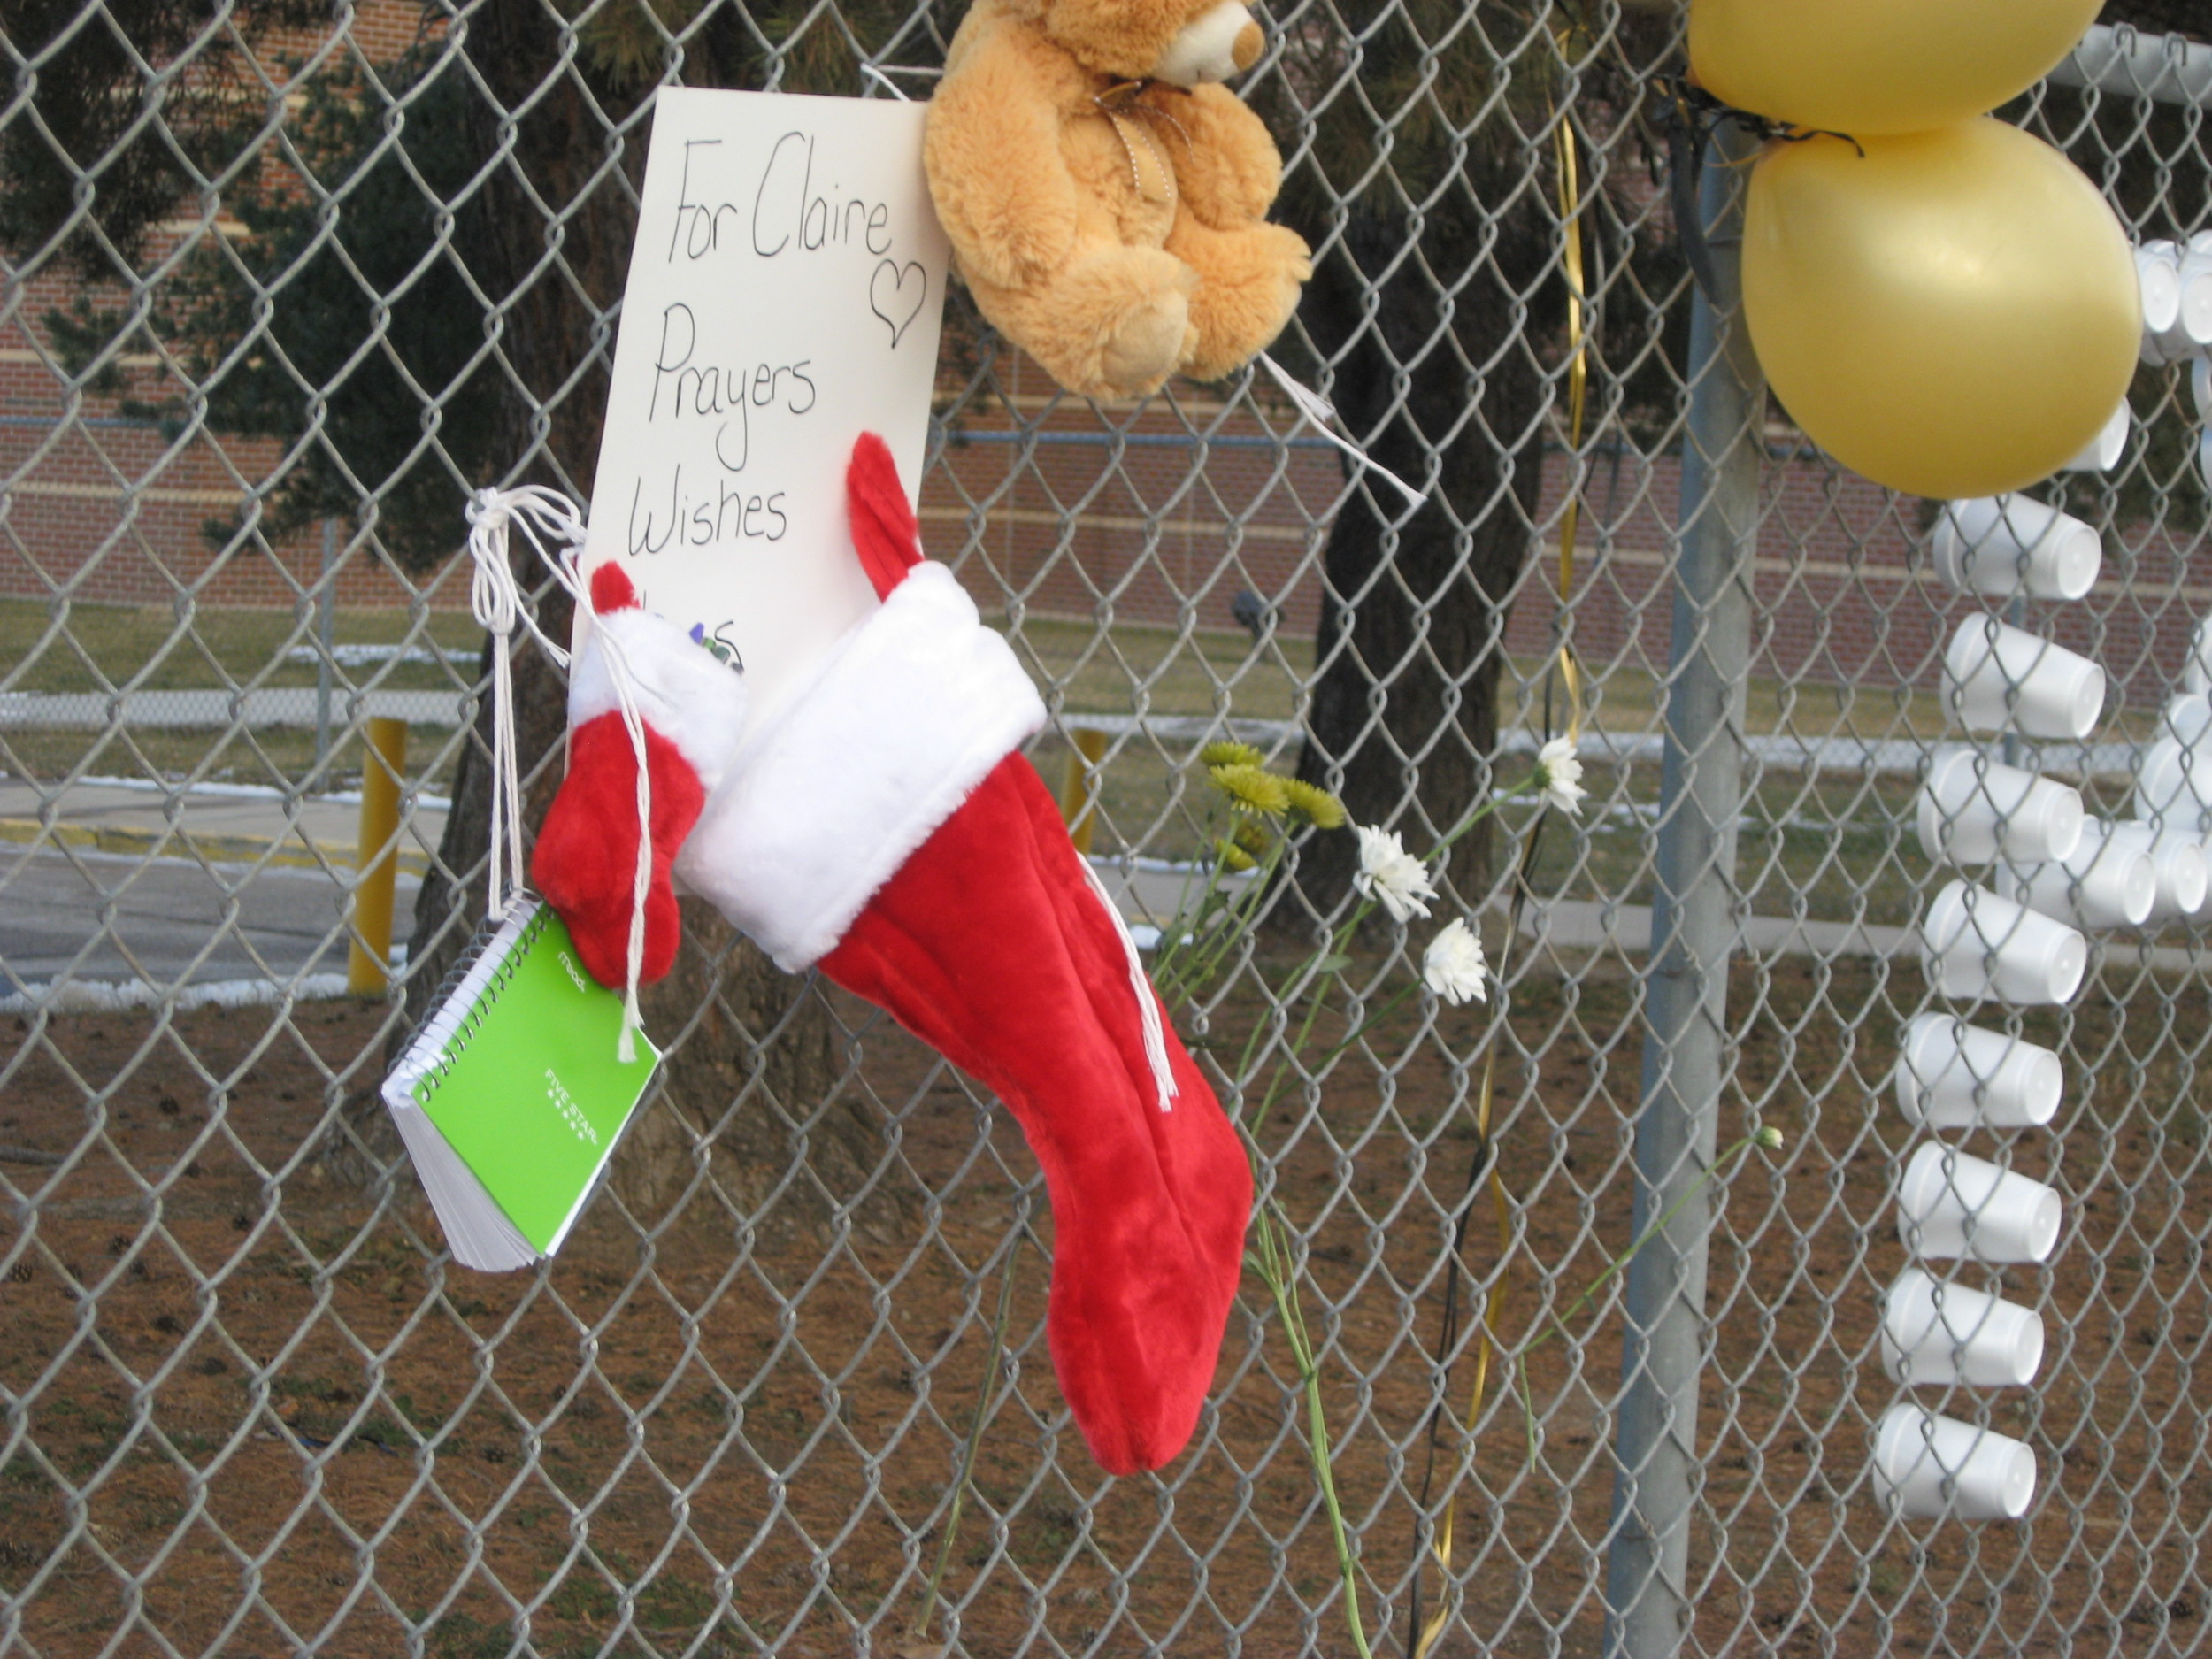 A Christmas stocking was among the many signs of support Sunday at Arapahoe High for Claire Davis, the 17-year-old student who is in critical condition after the Dec. 13 shooting at the school.